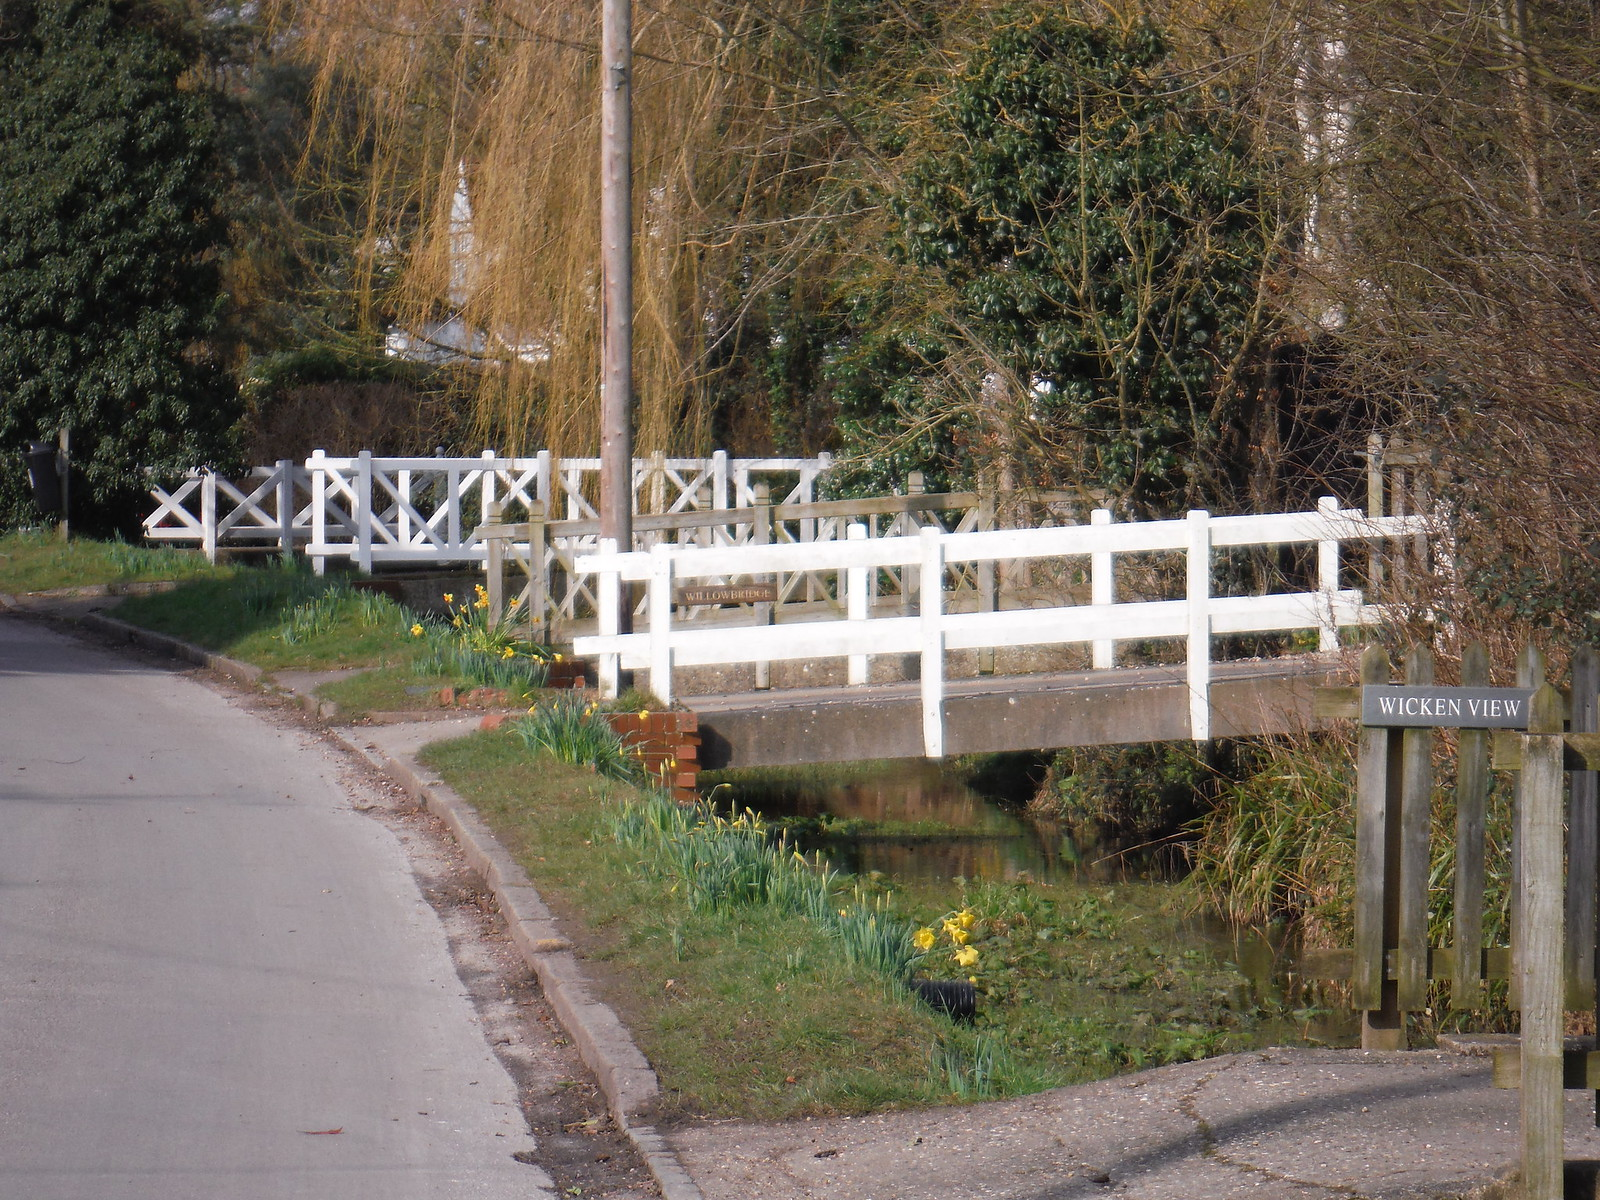 Bridges over Wicken Water, Arkesden SWC Walk 116 Wendens Ambo [Audley End station] Circular